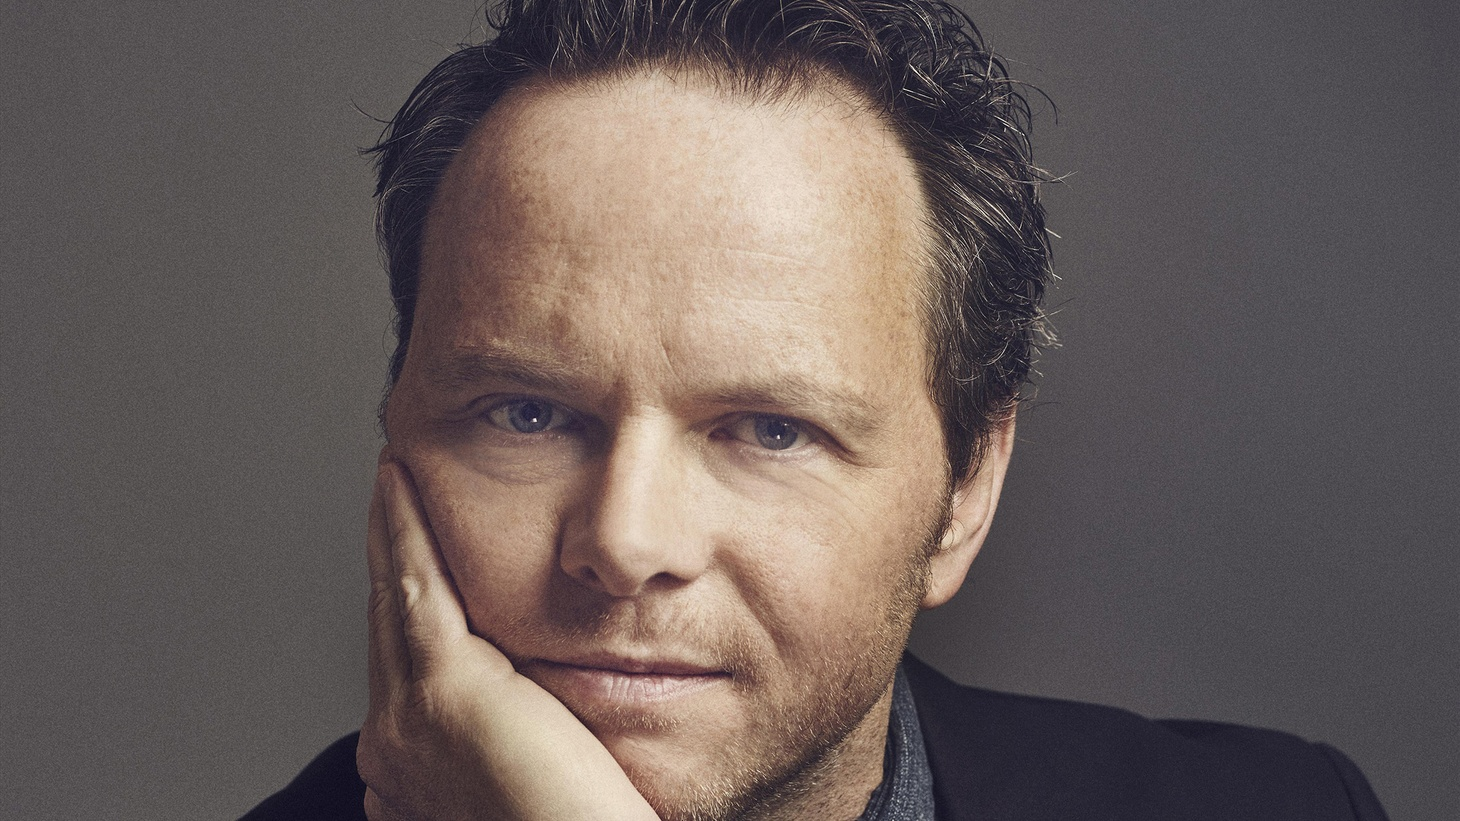 Writer-producer Noah Hawley, recently Emmy-nominated for both writing and directing in season two of Fargo, tells us how he gets so much writing done, why he doesn't ever want to work in broadcast TV again, and what he knows so far about Fargo season three.